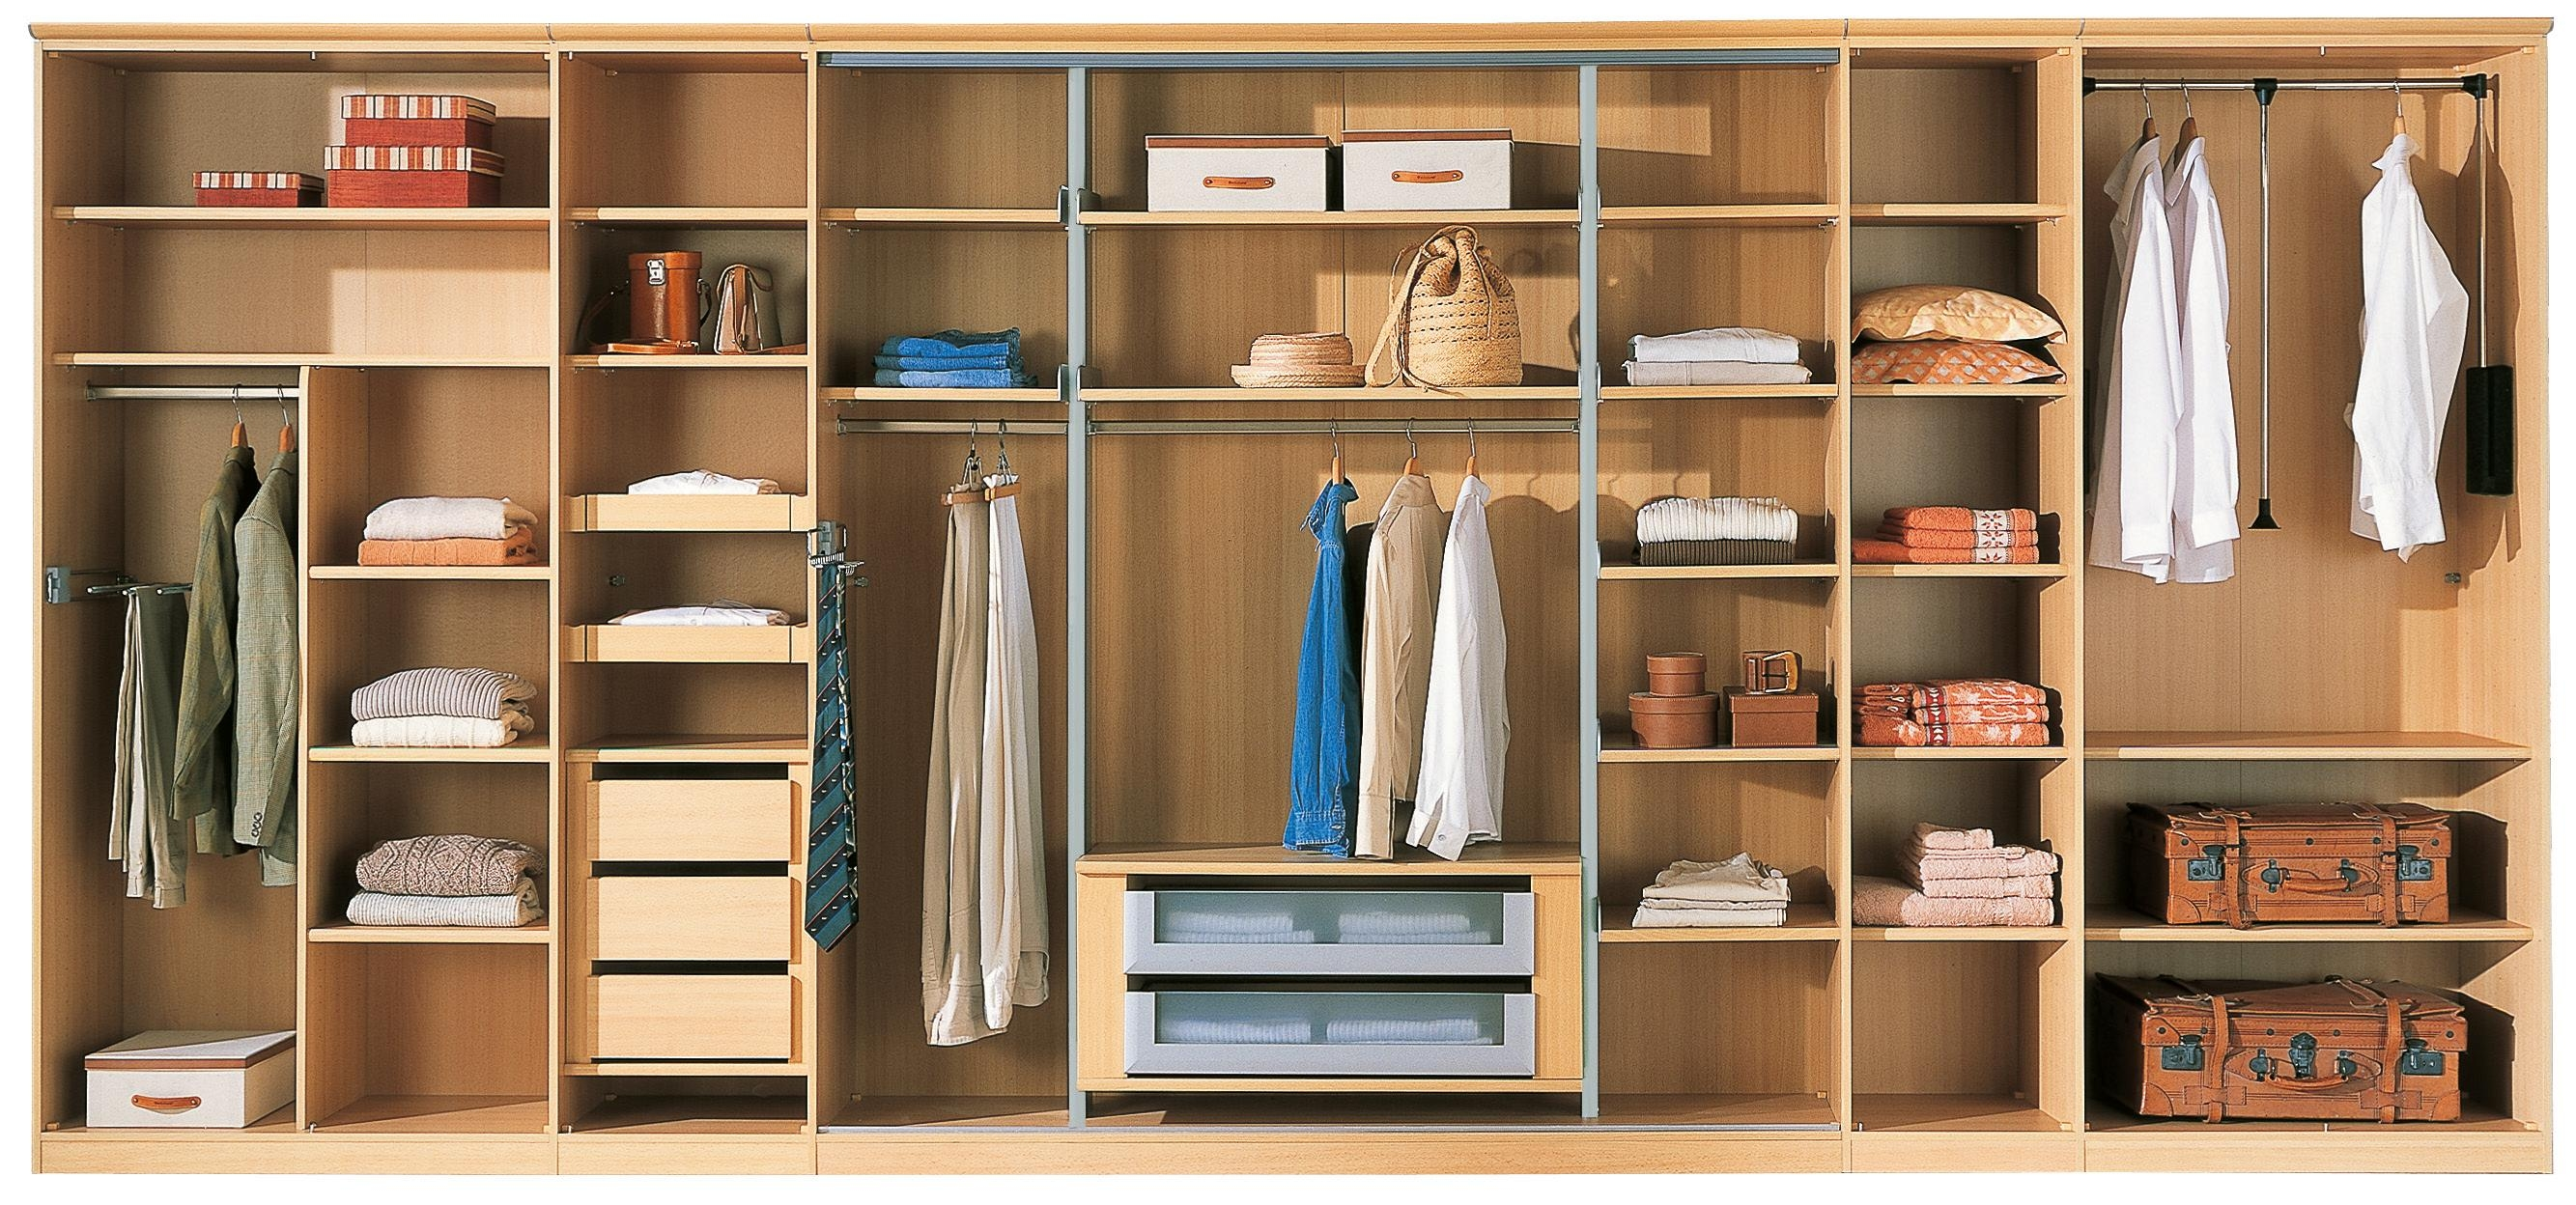 Nice Portable Wardrobe Organizer Clothes Space Saving Organizer For Space Saving Wardrobes (Image 19 of 25)